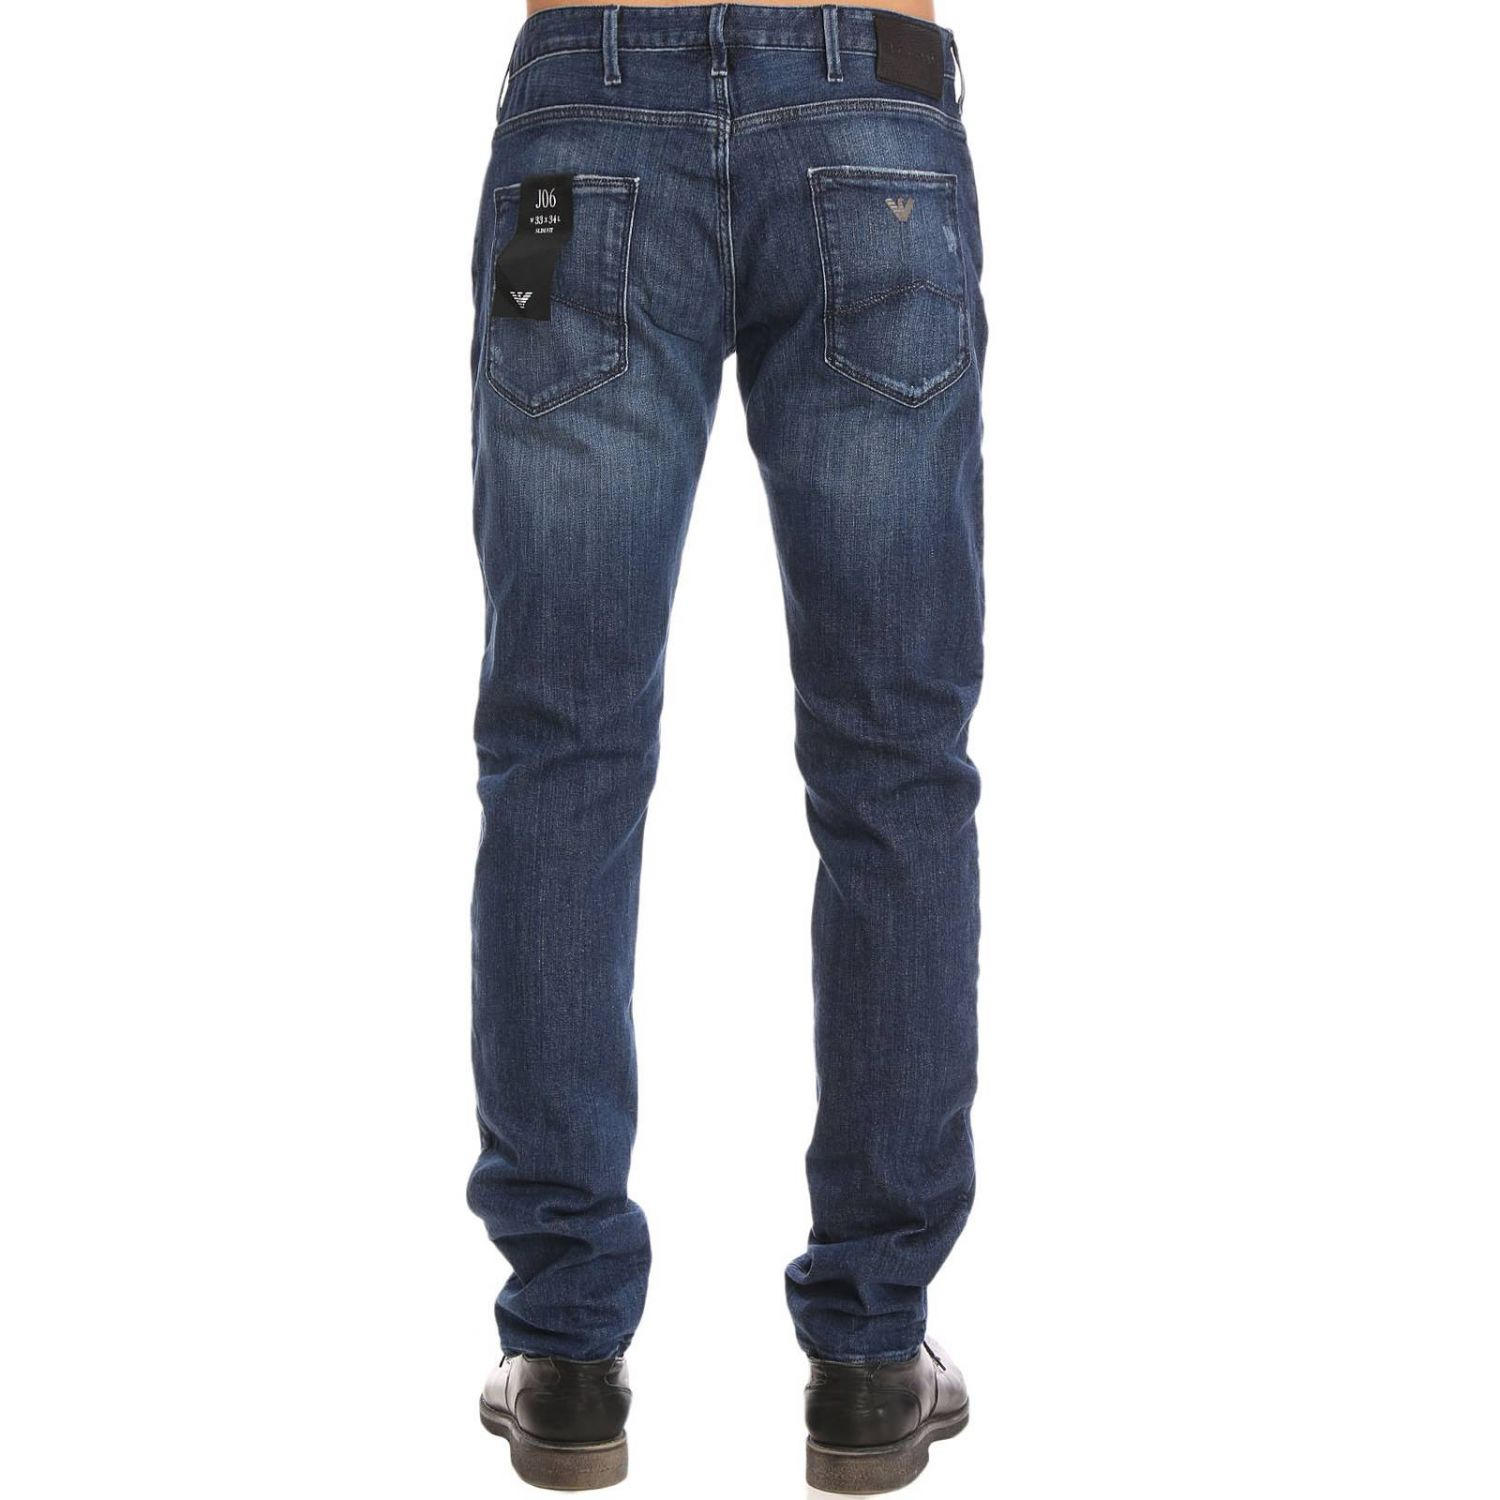 Jeans men Emporio Armani denim 3